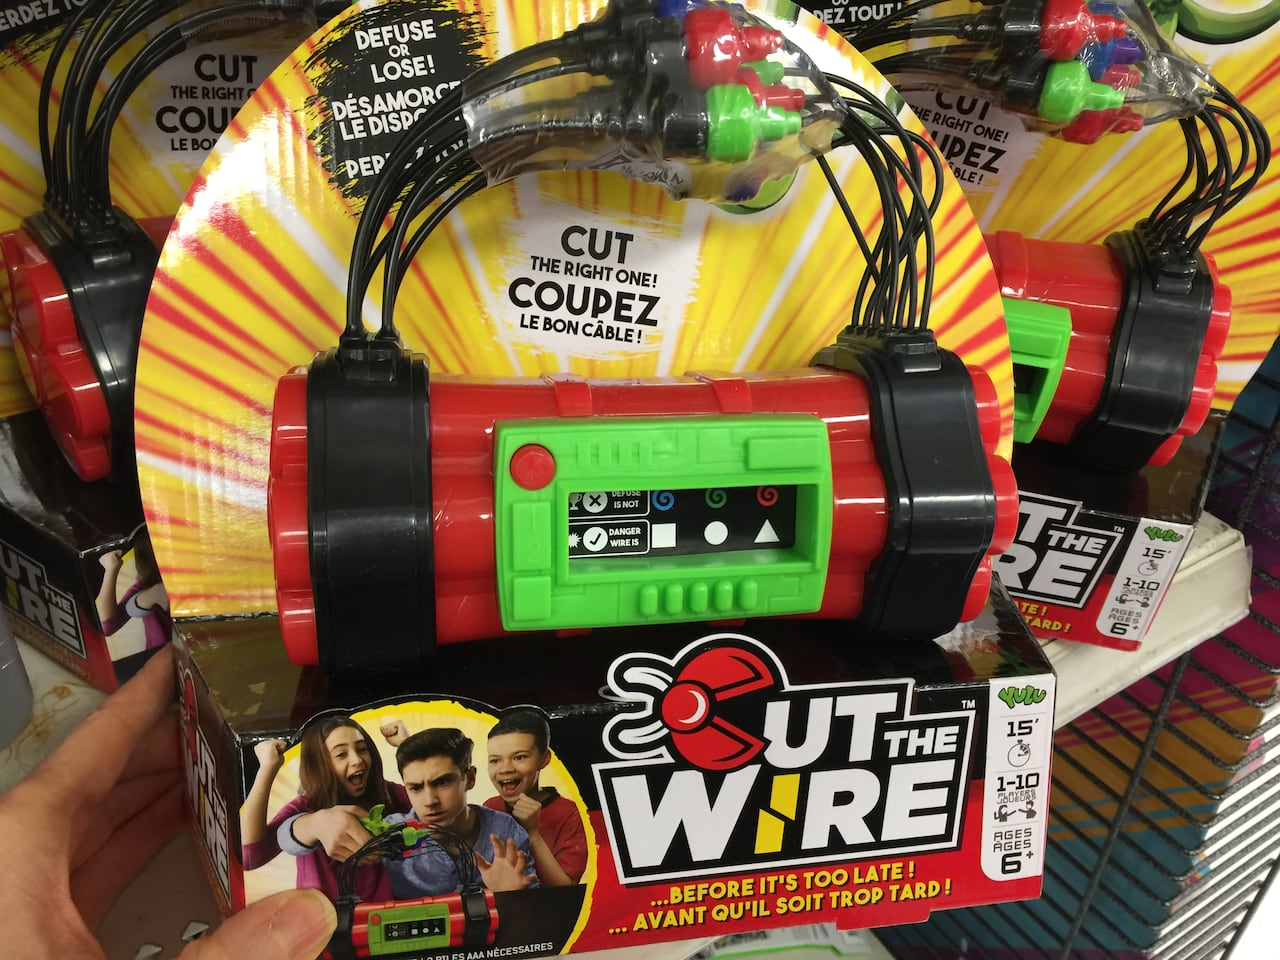 Walmart The Wire | Horrendous Bomb Defusing Game For Kids Sold At Walmart Offends Some